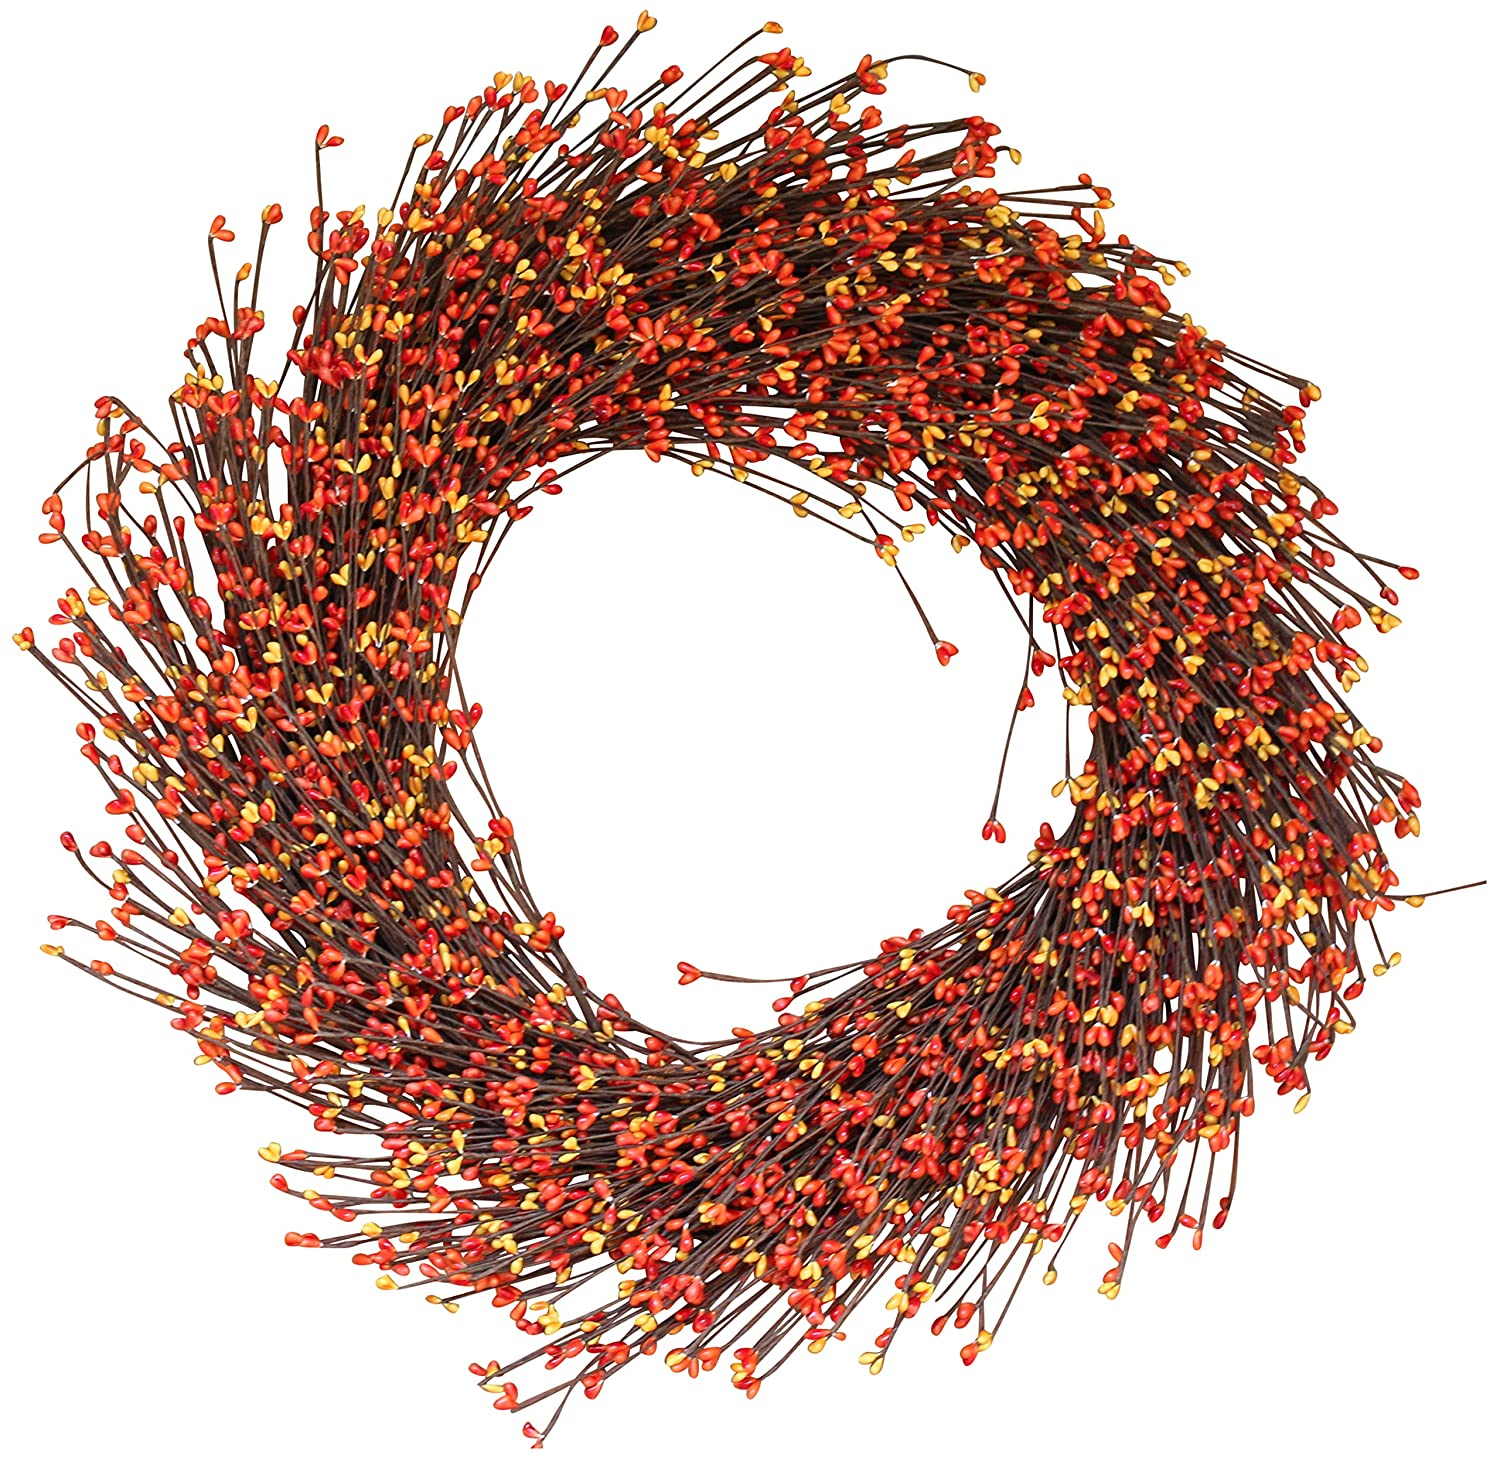 Claremont Fall Pip Berry Wreath 22 Inches - Brightens Front Door Decor with Vibrant Fall Colors, Approved for Covered Outdoor Use, with Beautiful White Gift Box The Wreath Depot